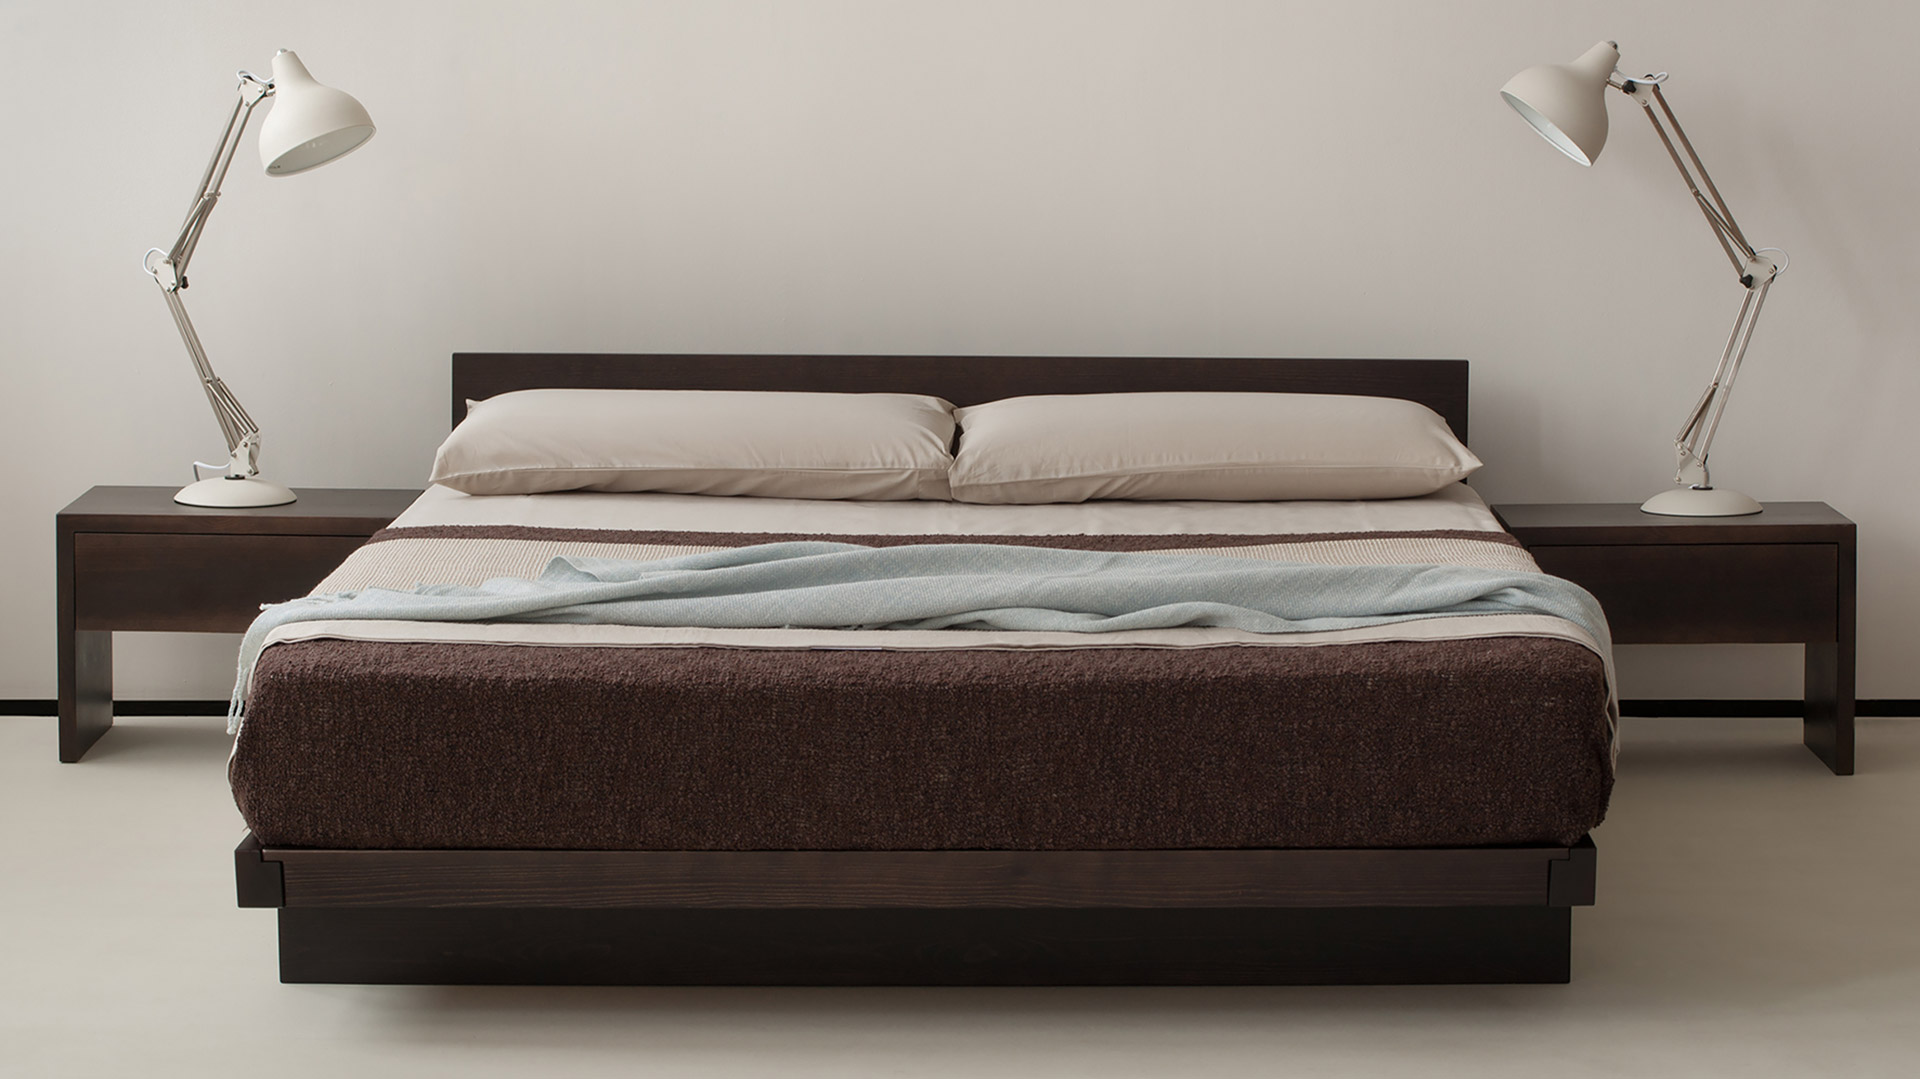 Kumo bed with Kyoto drawer tables